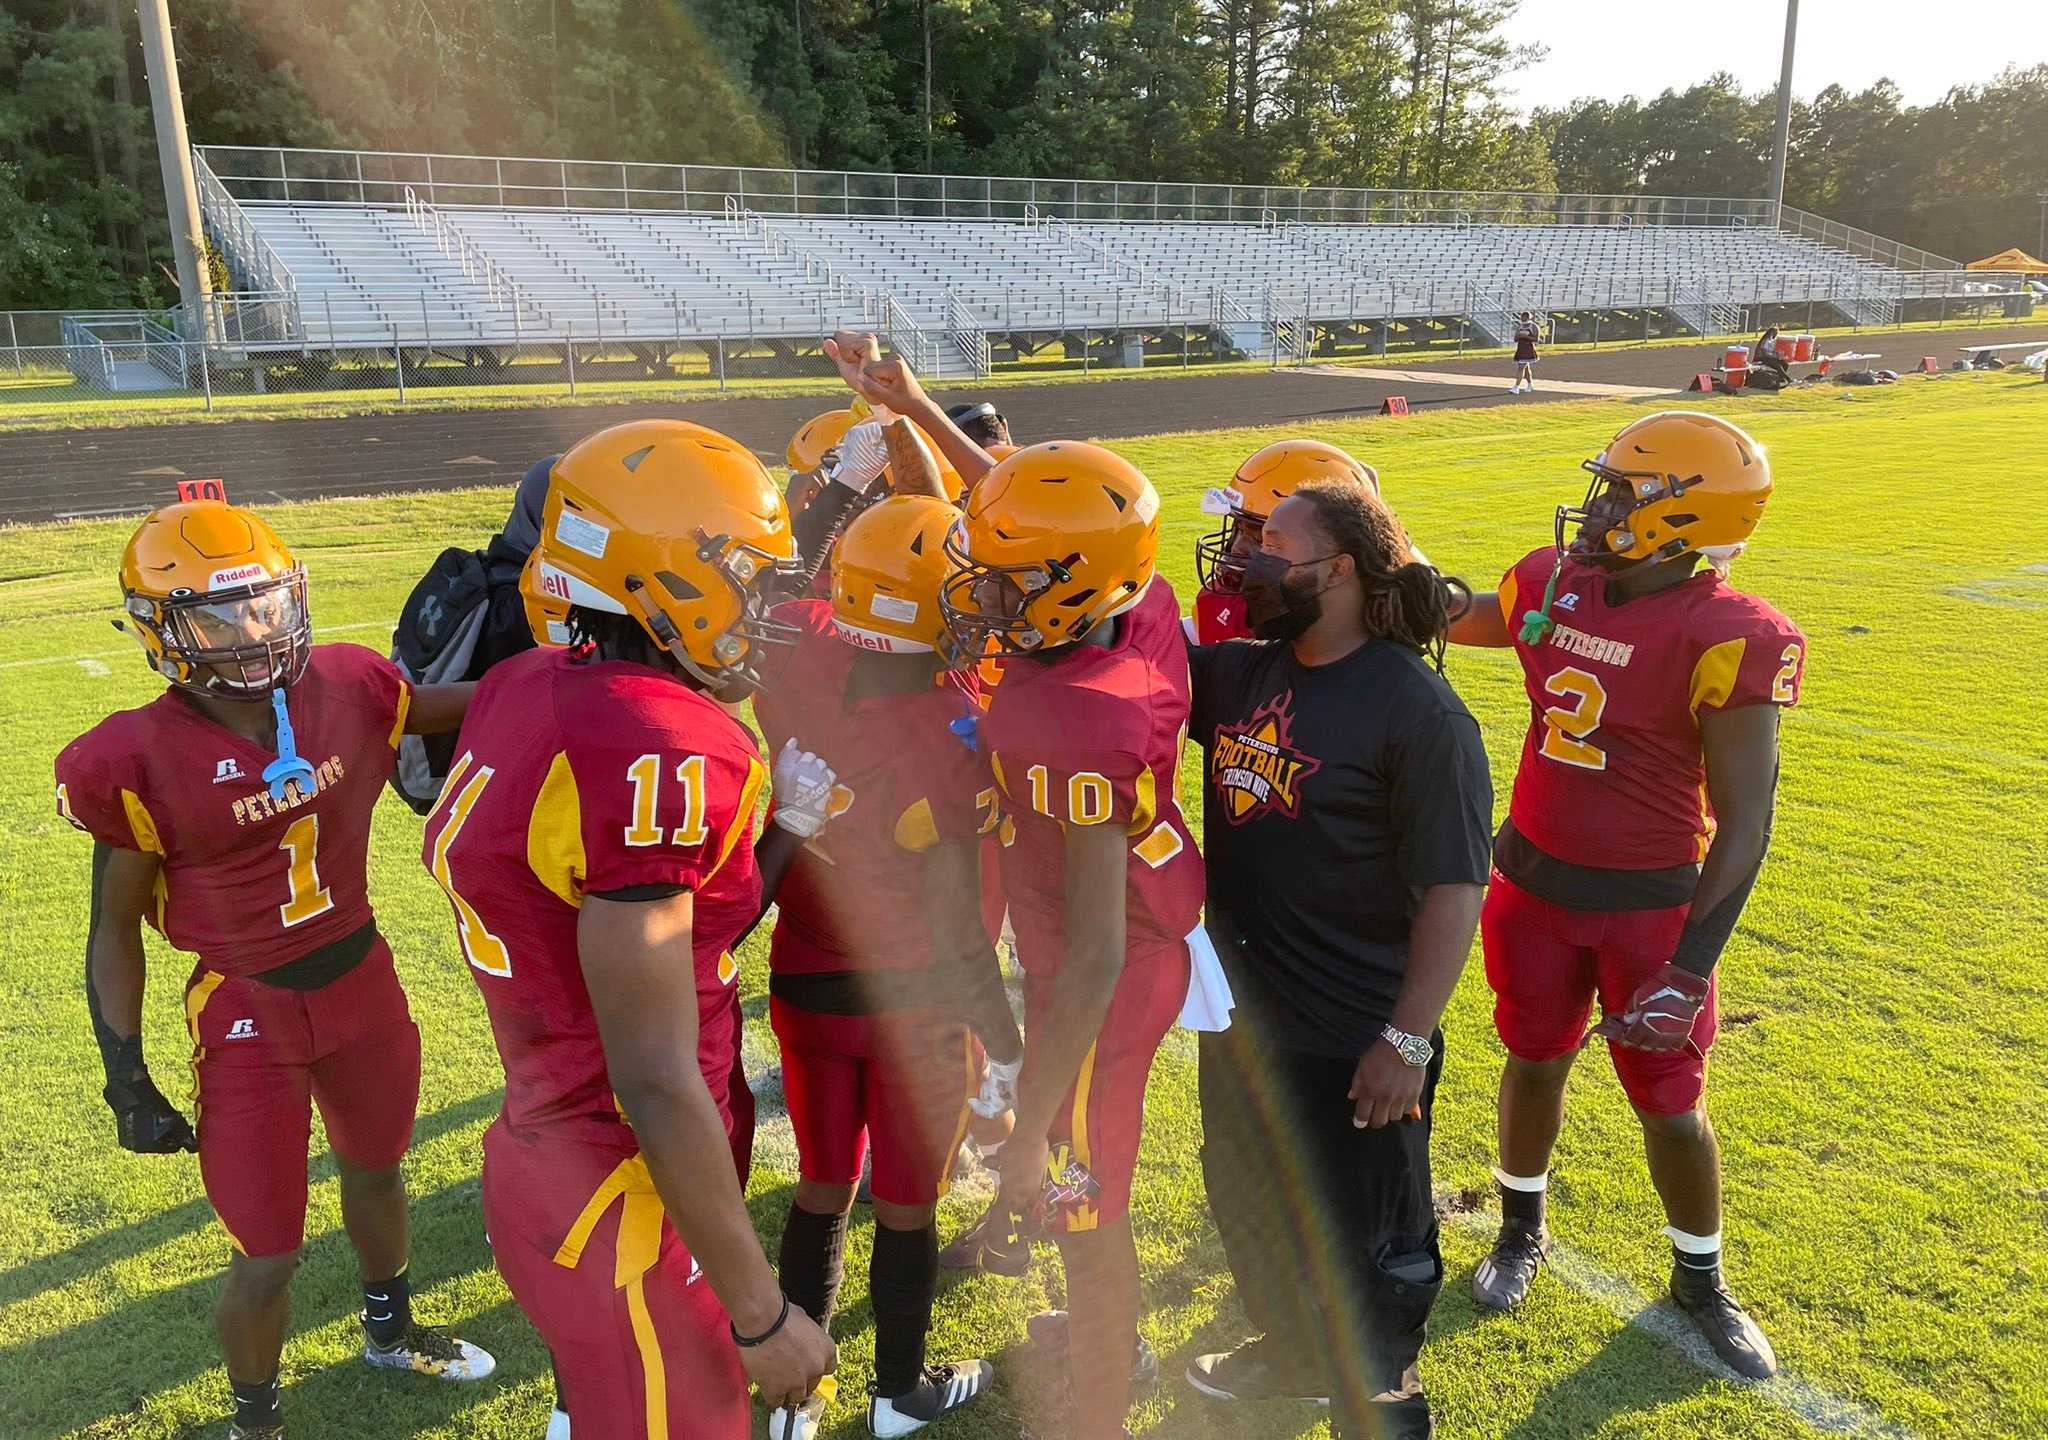 Petersburg High School players before the game